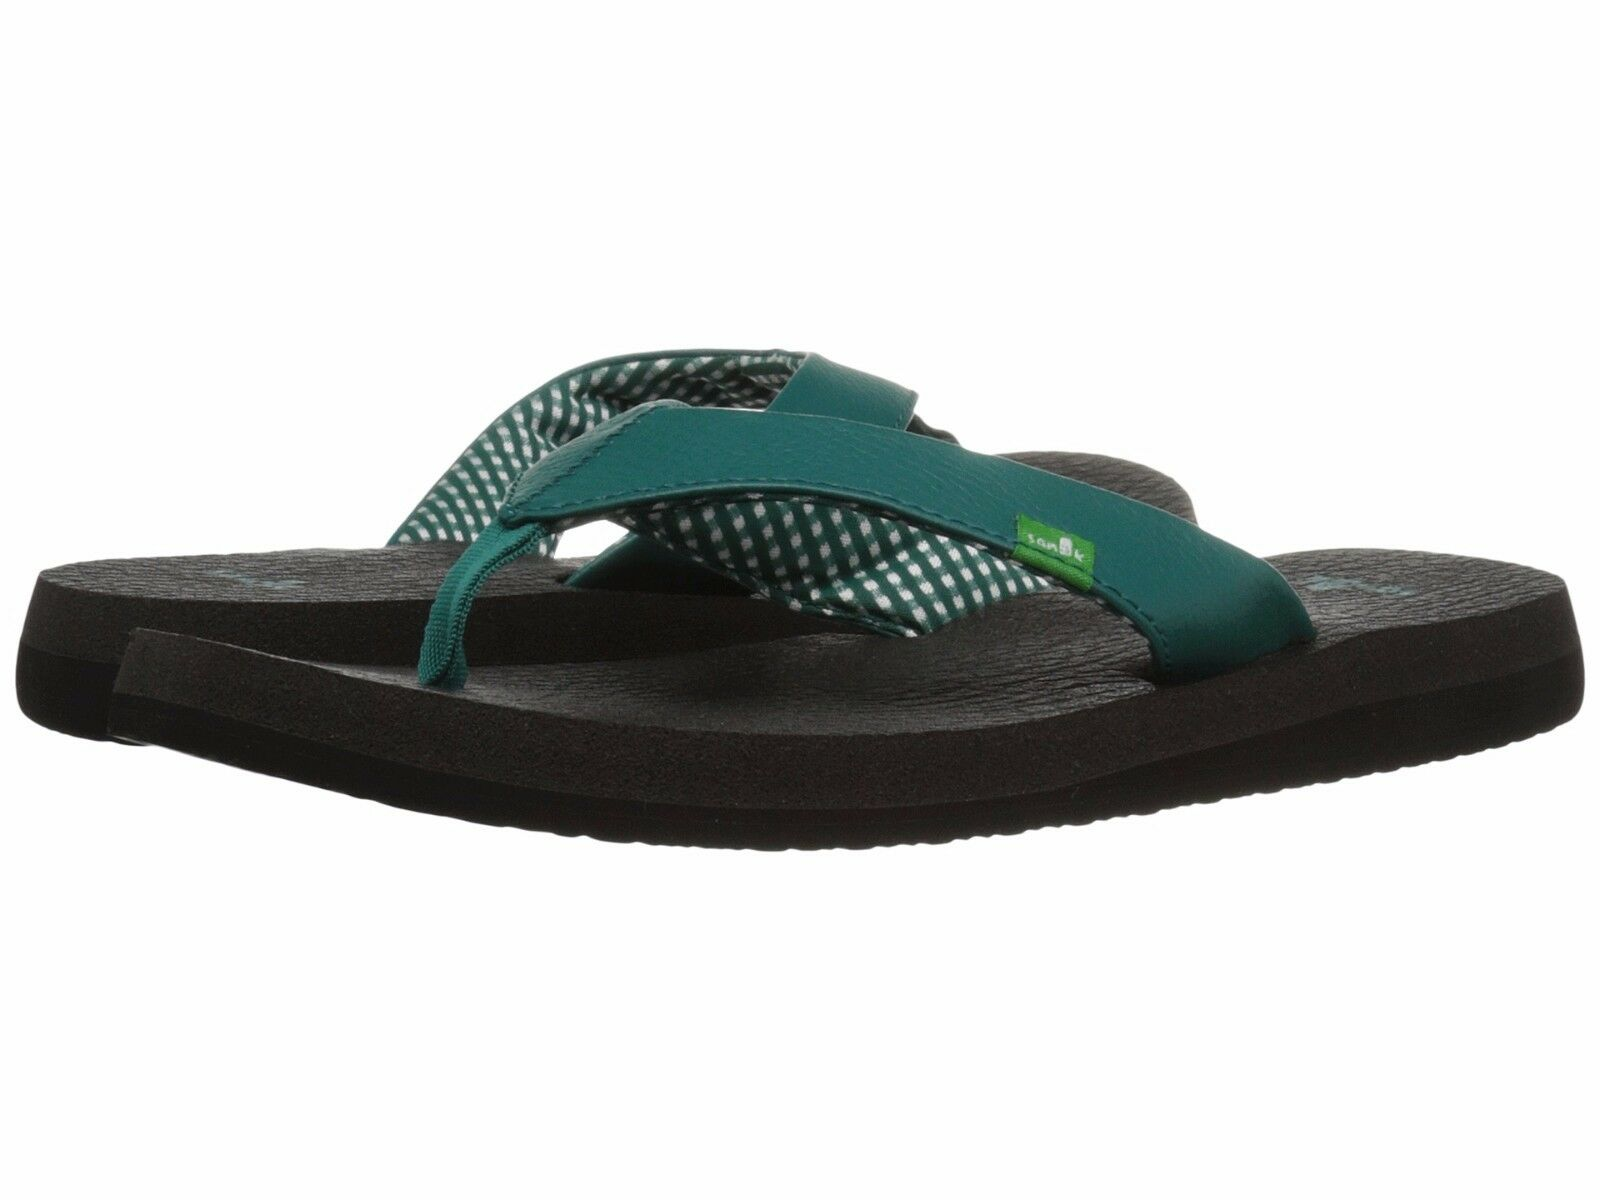 NEW SIMMS ATOLL LAGOON  FLIP FLOPS SANDALS WOMENS 8 FREE SHIP